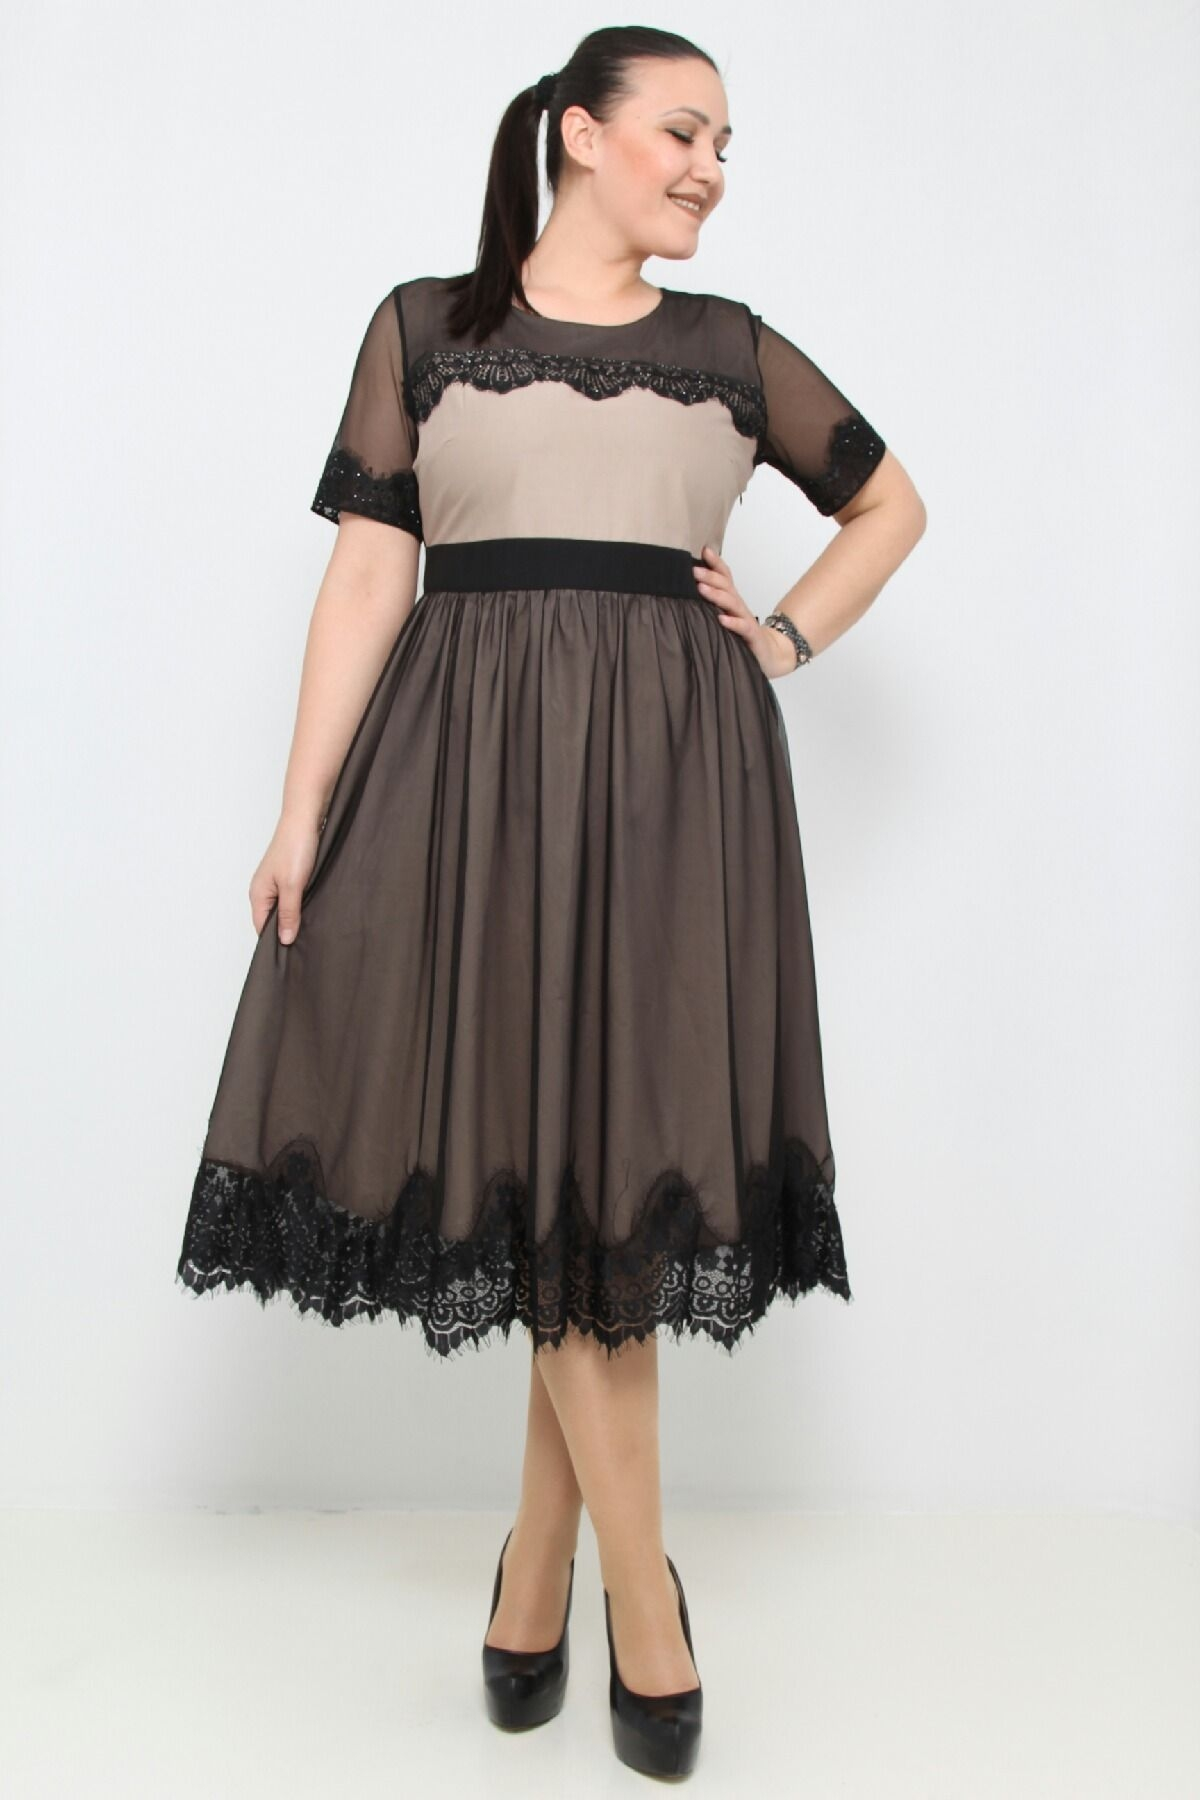 wholesale plus size womens clothing turkey